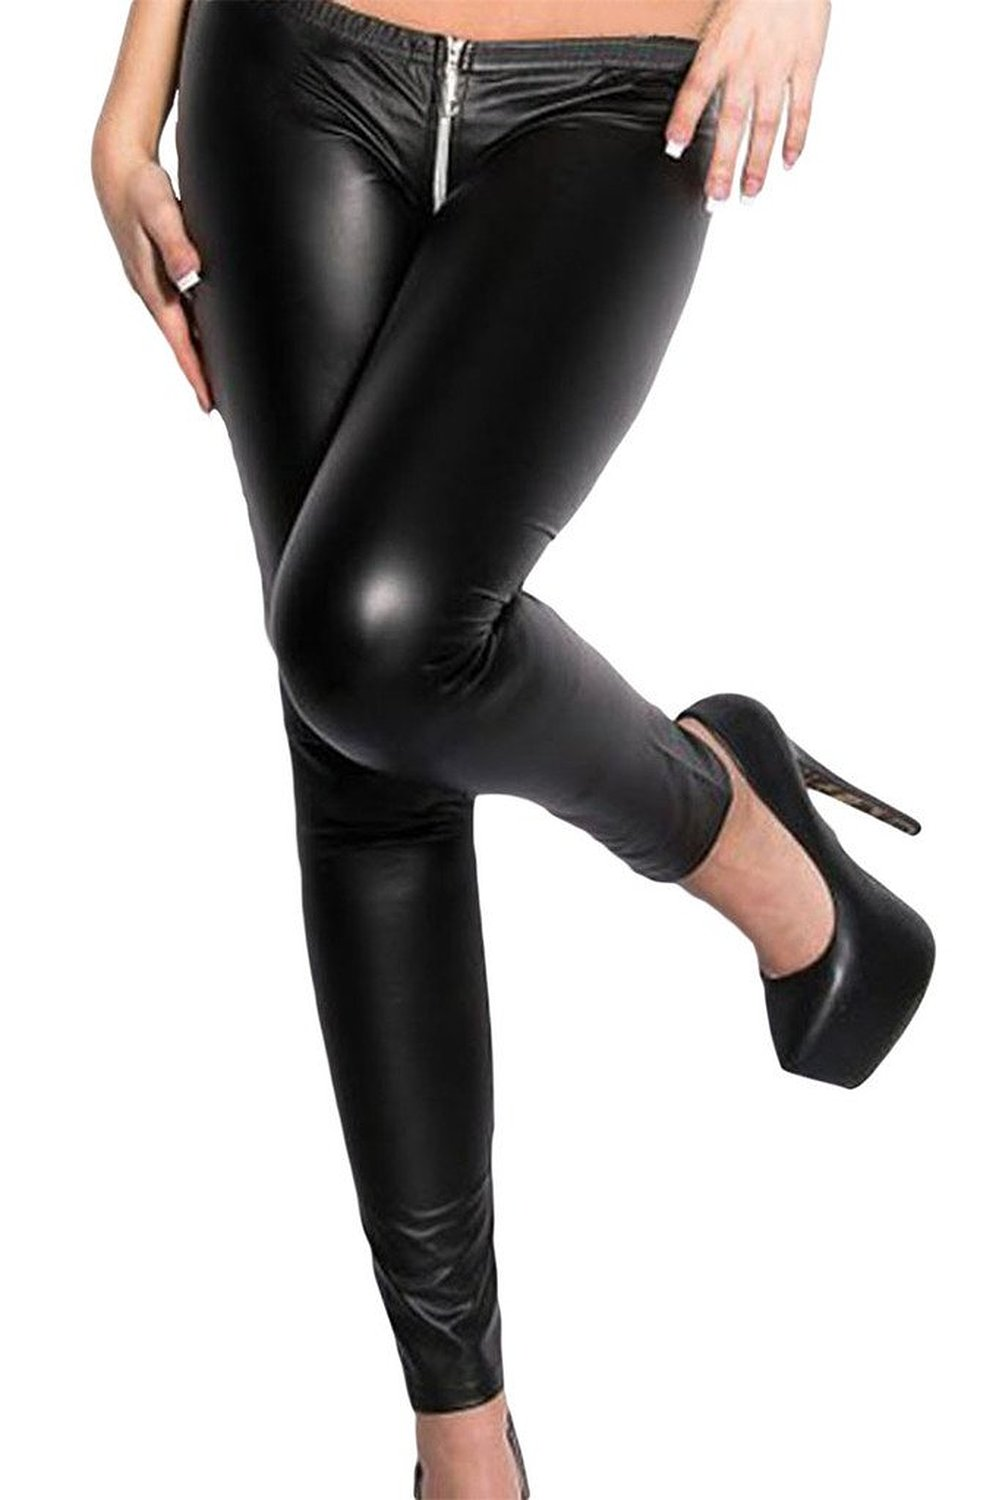 com: Happy Sailed Women's Wet Look Zippered Tight Leather Leggings ...